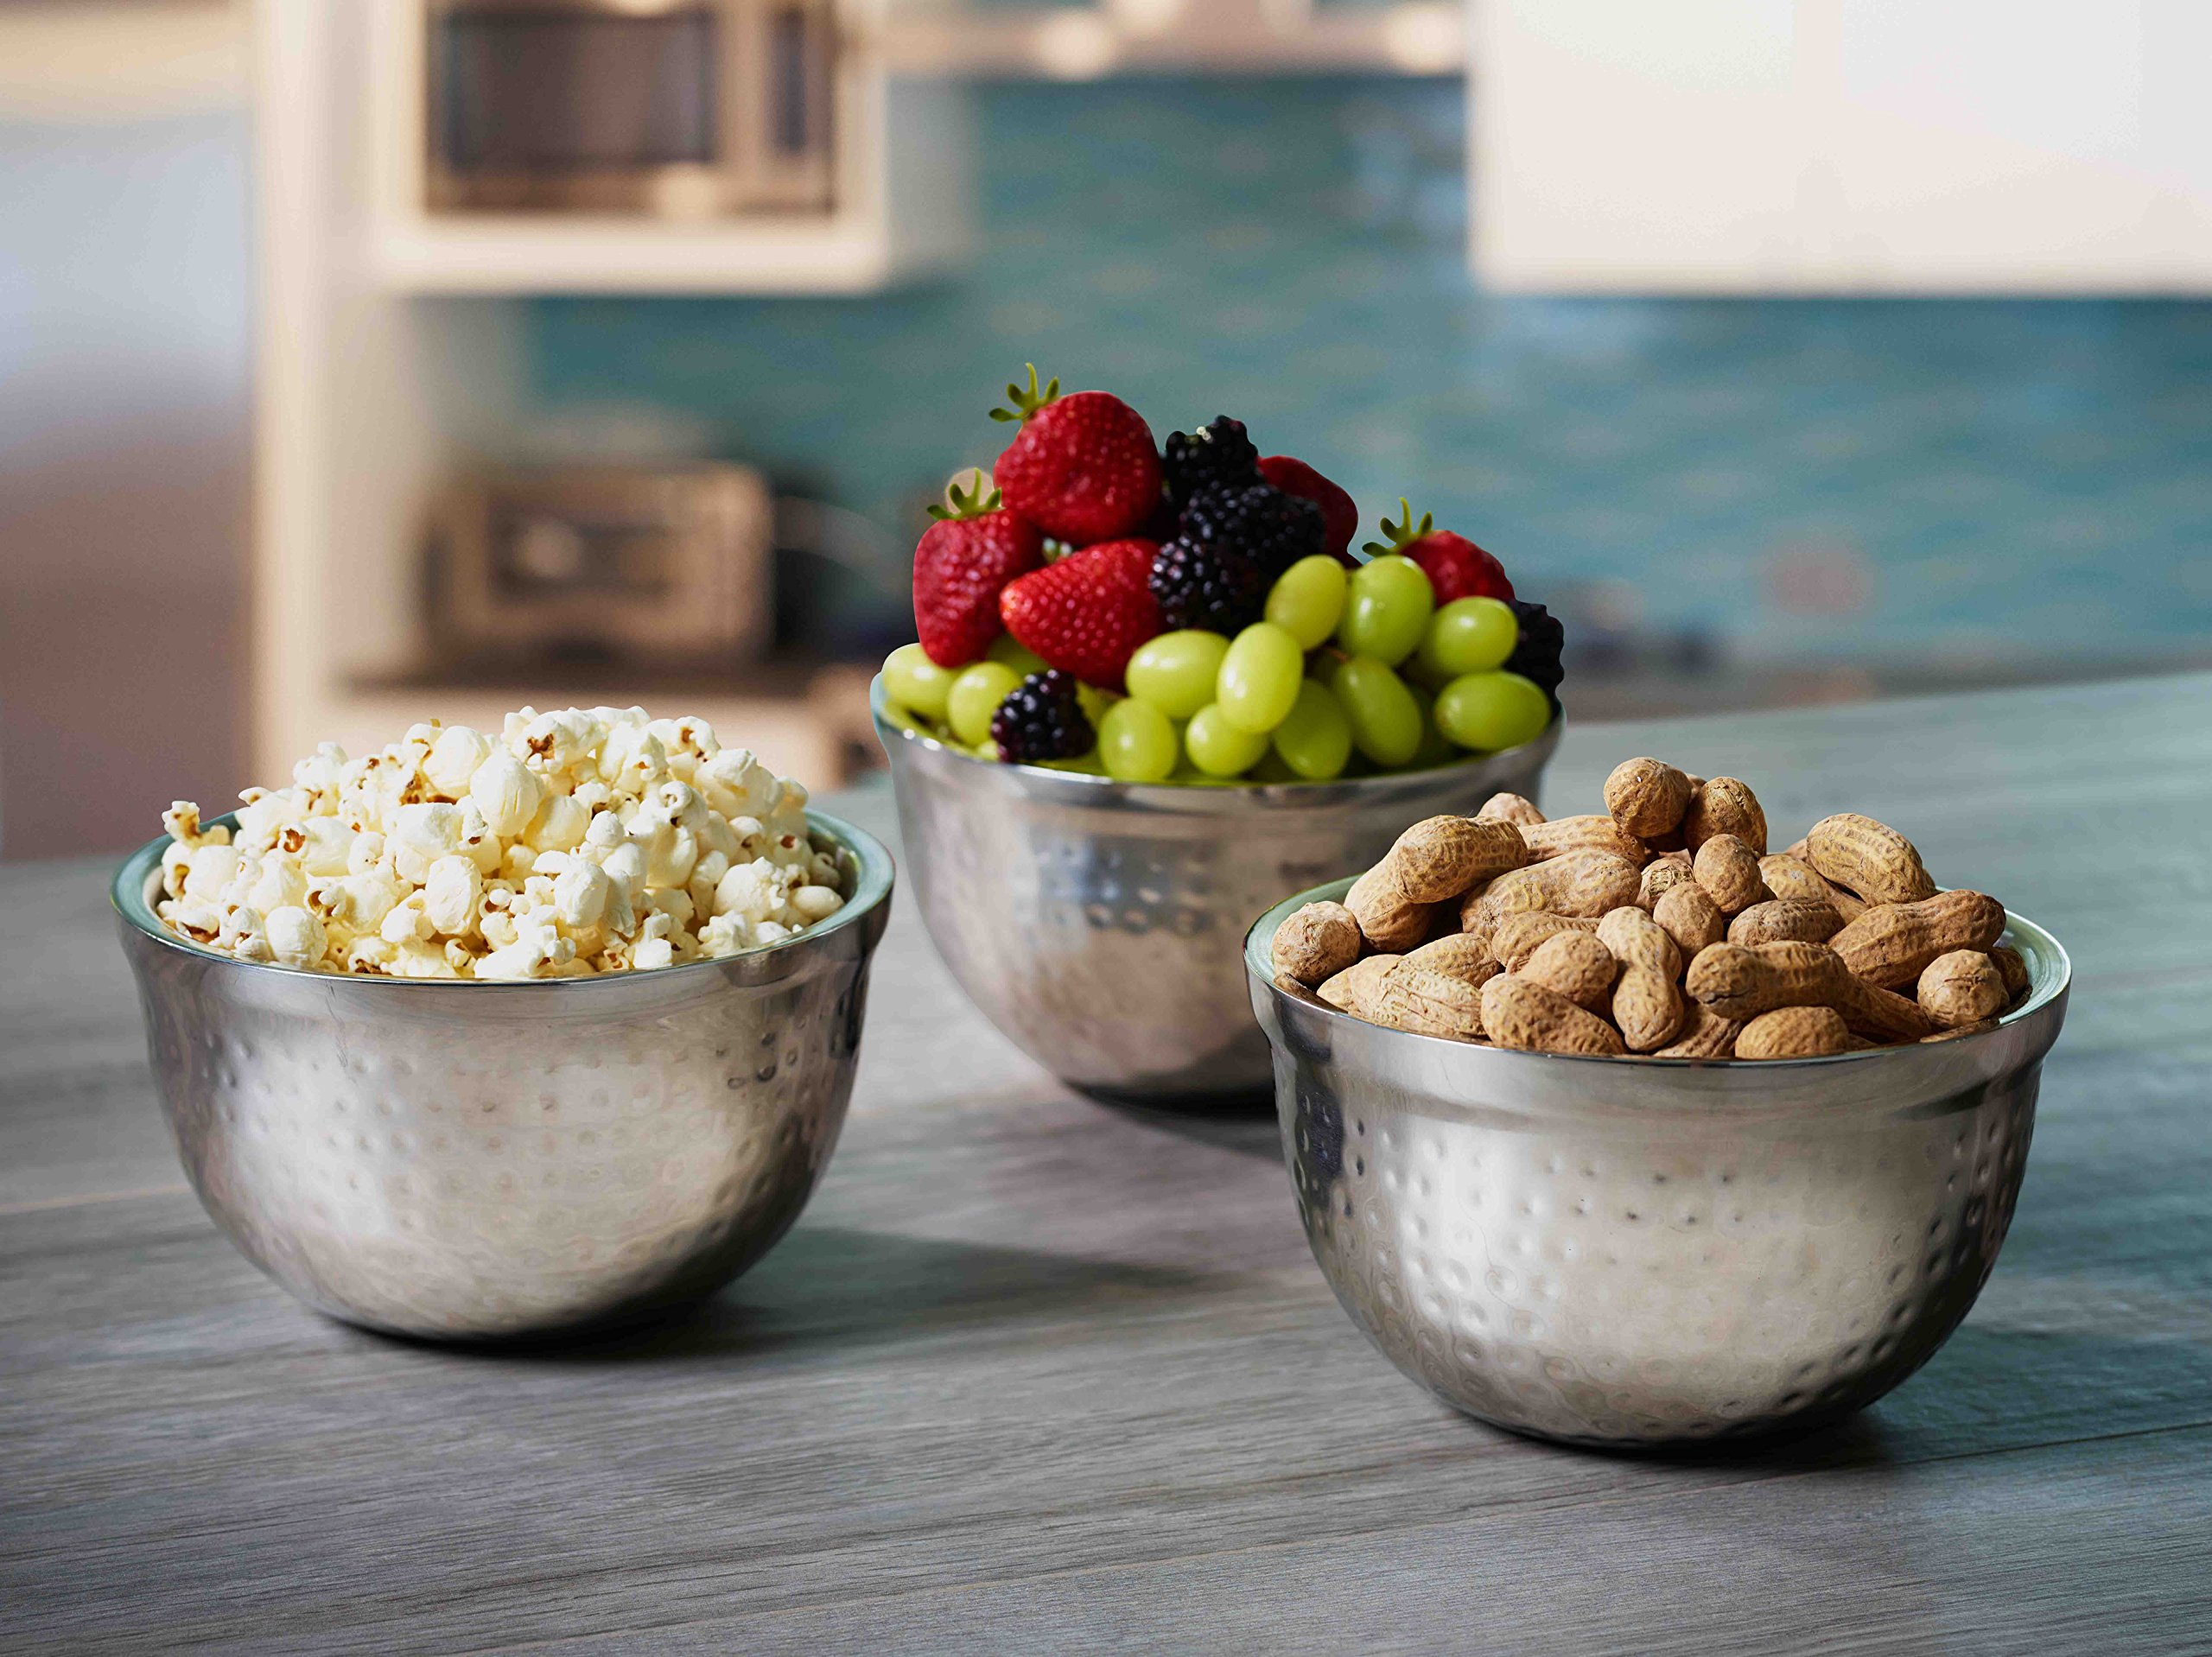 BirdRock Home Stainless Steel Appetizer Bowl Set | Includes 3 Bowls